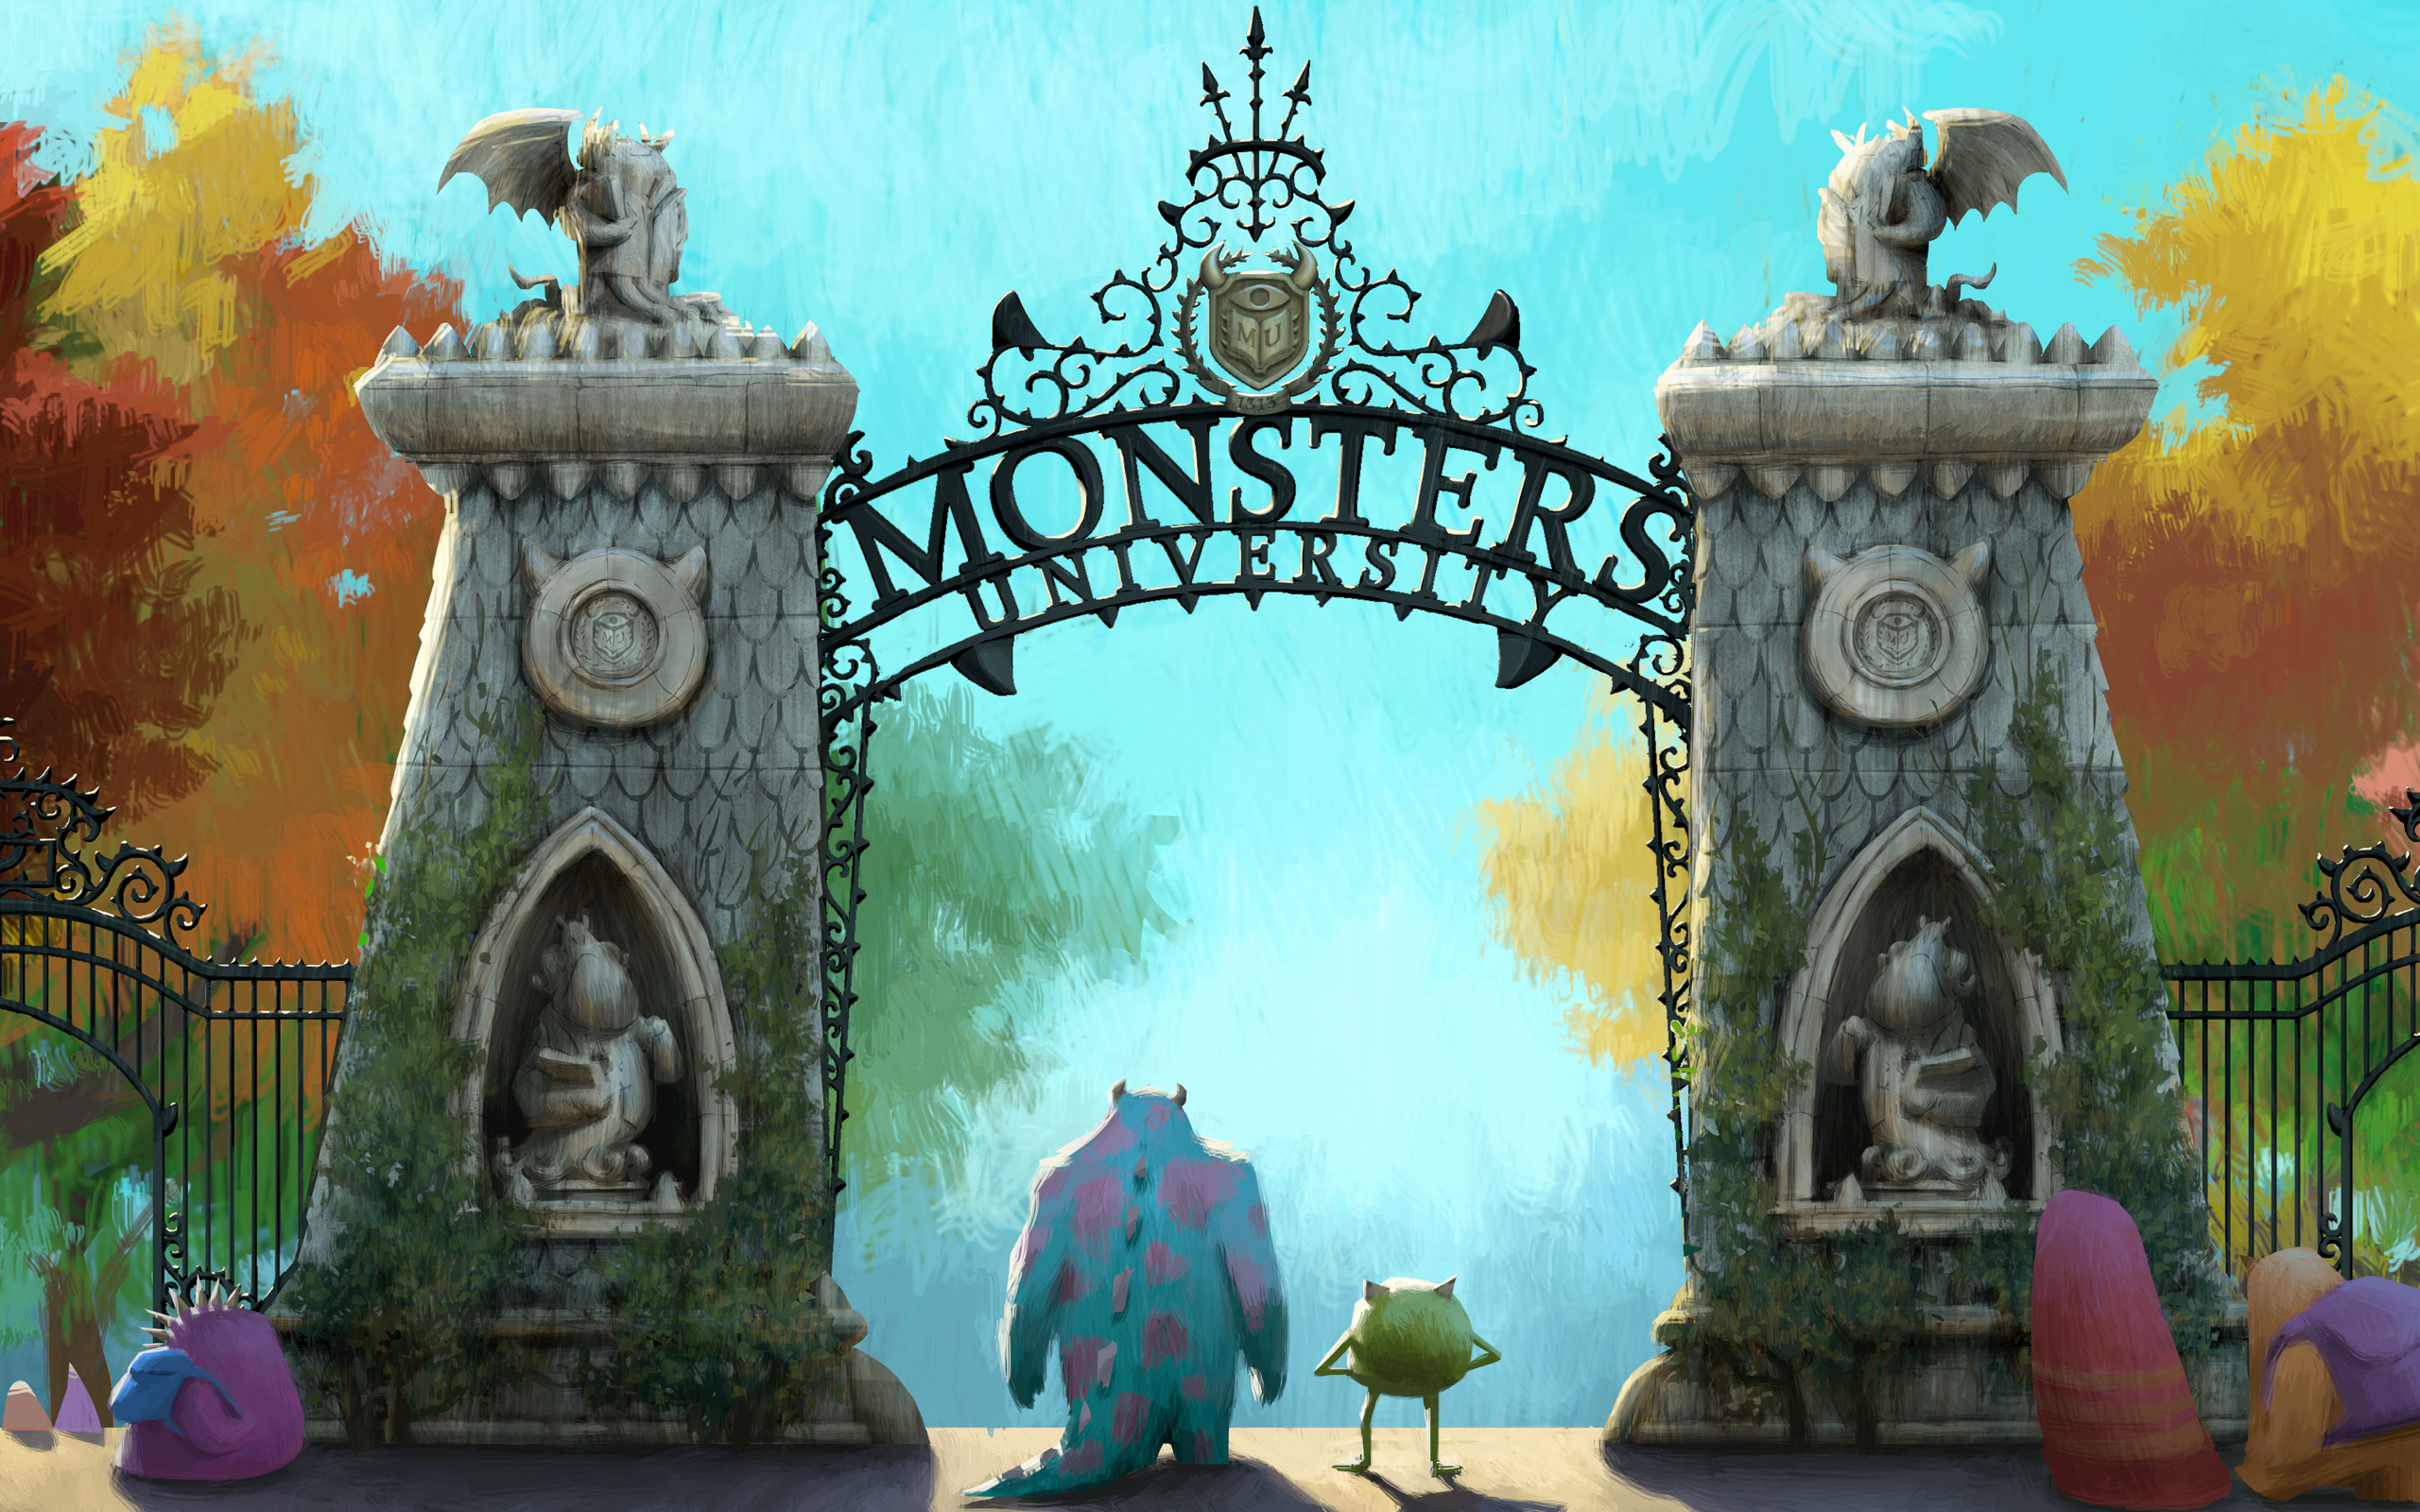 Monsters Inc - Monsters, Inc. Wallpaper (34550943) - Fanpop